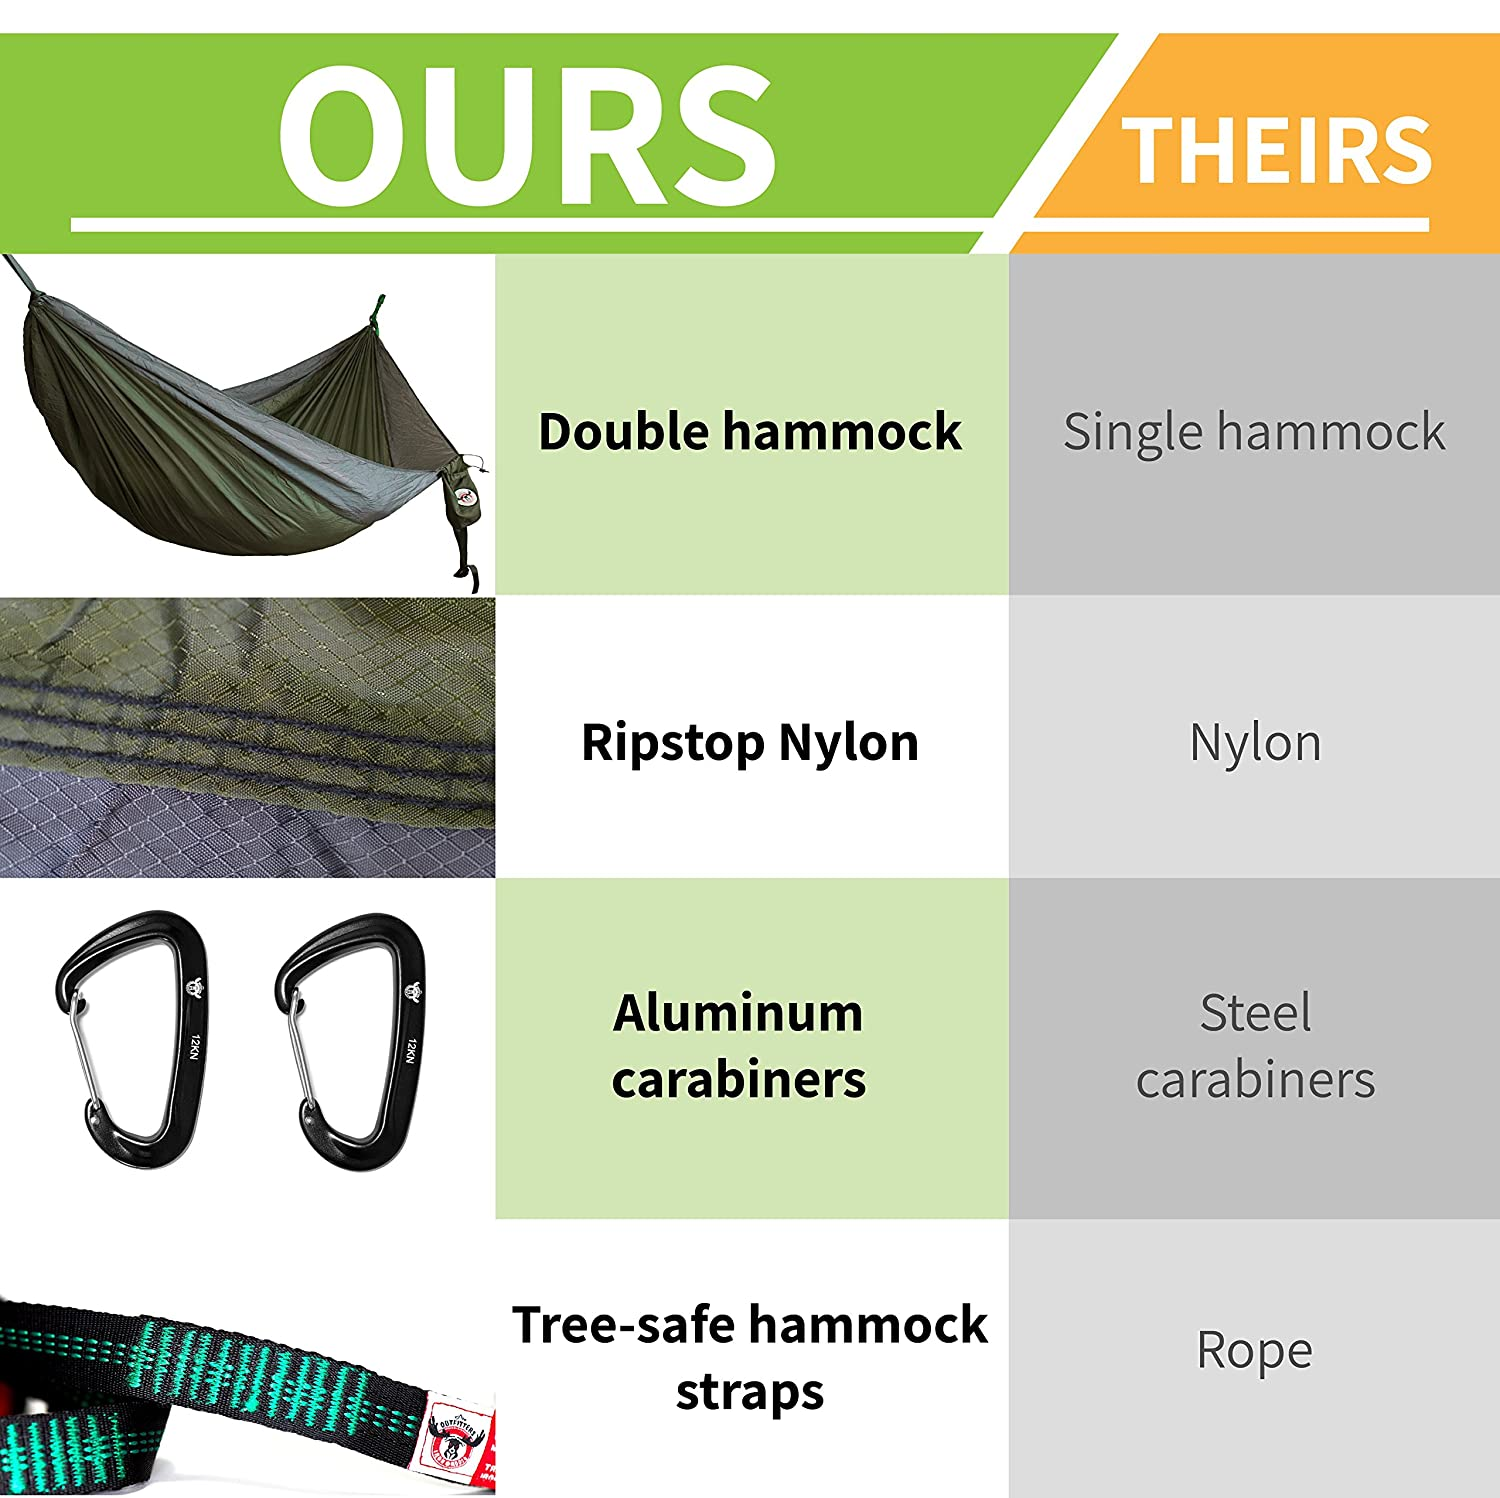 12KN Wiregate Carabiners and Heavy-Duty Tree Straps Iron Moose Outfitters Outdoor Double Camping Hammock Gear Set By includes Tear Resistant Rip-Stop Nylon Hammock fits two person